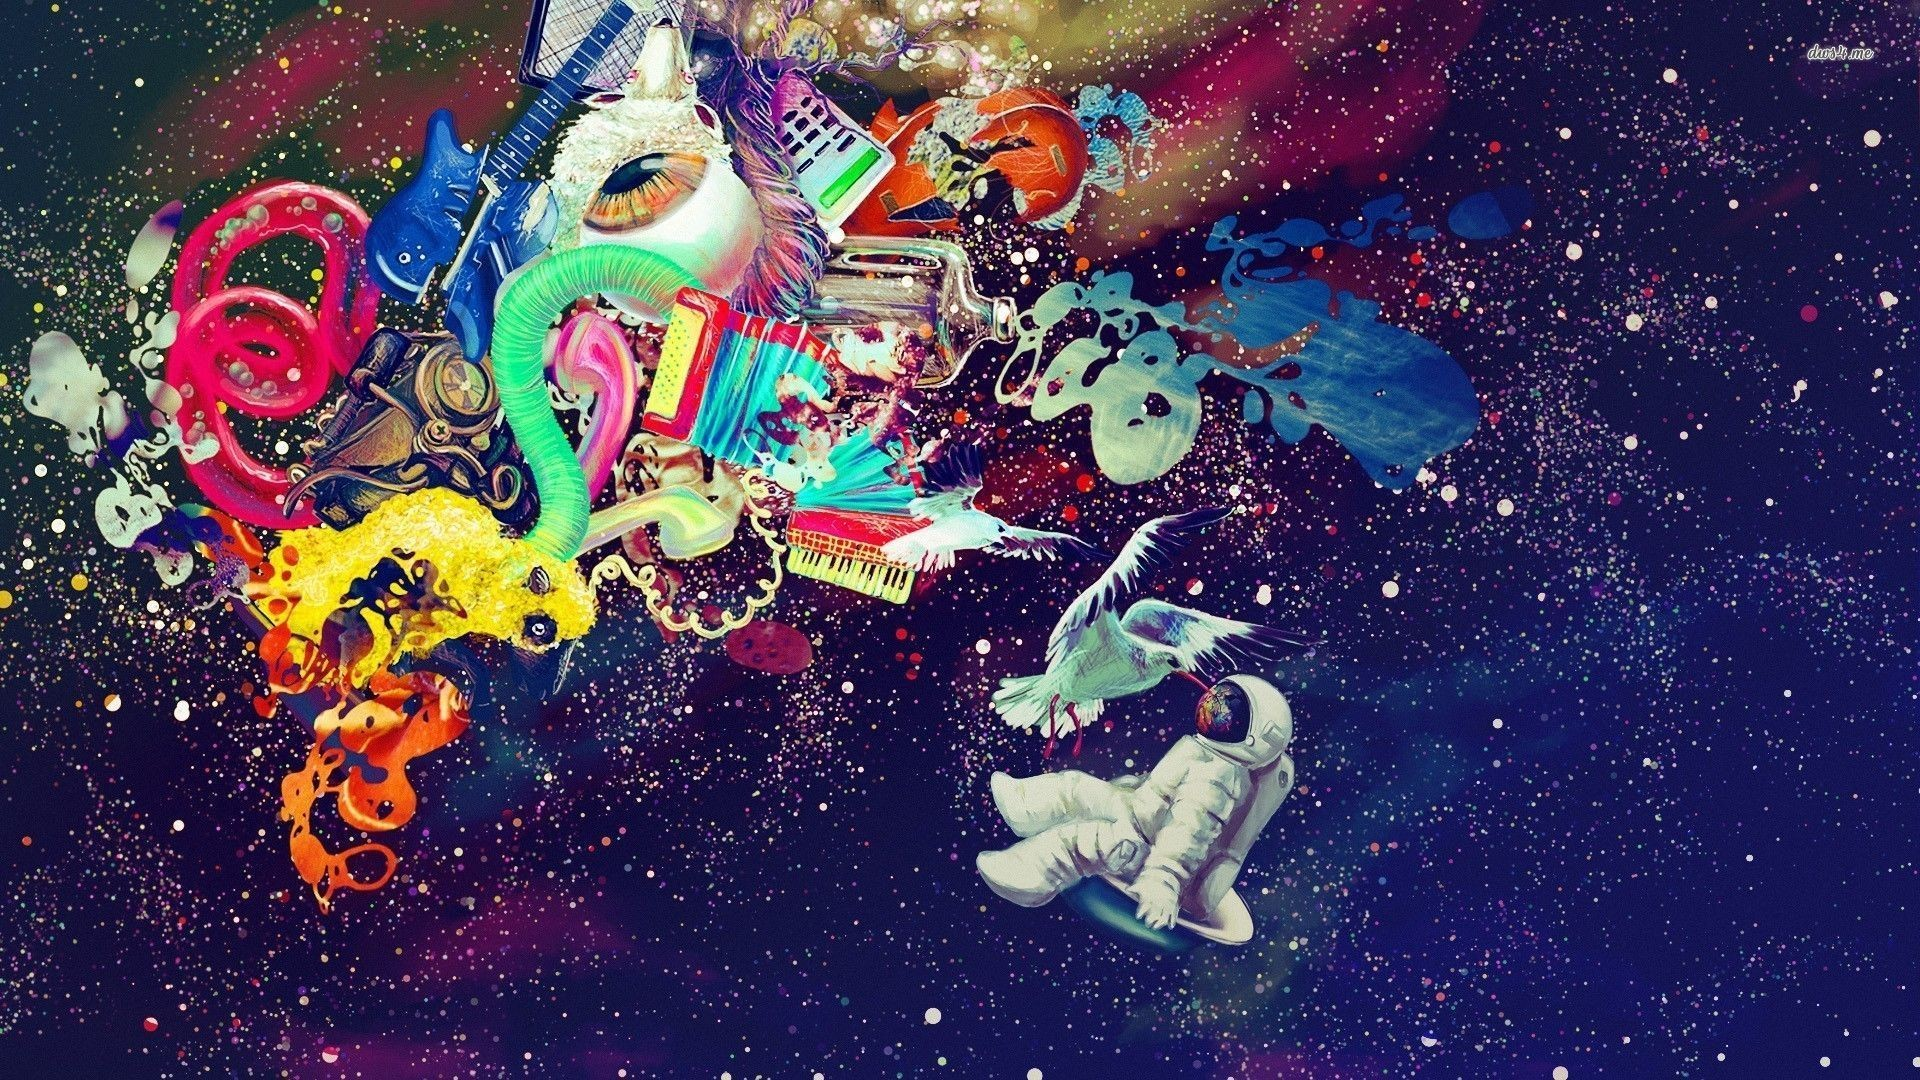 1920x1080 Rainbow Astronaut Wallpaper (page 2) - Pics about space